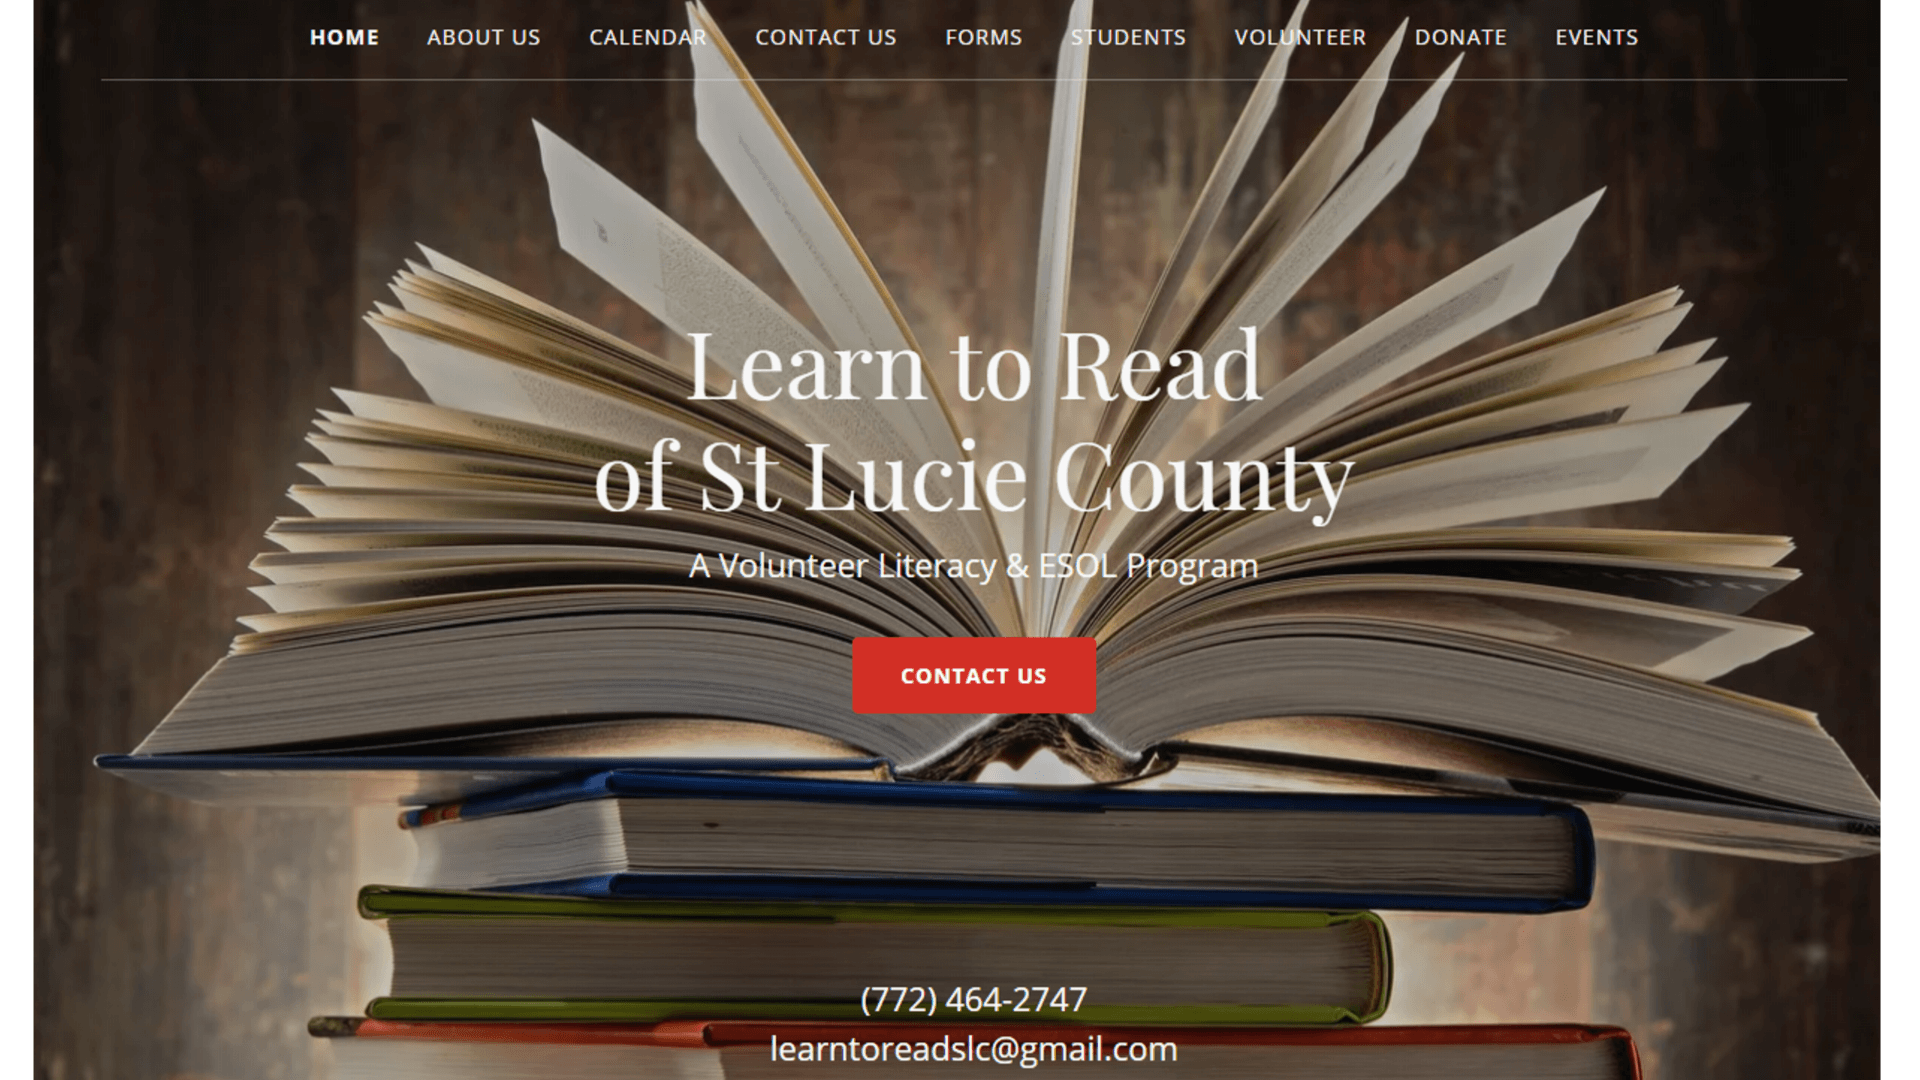 Learn to Read of St Lucie County website page